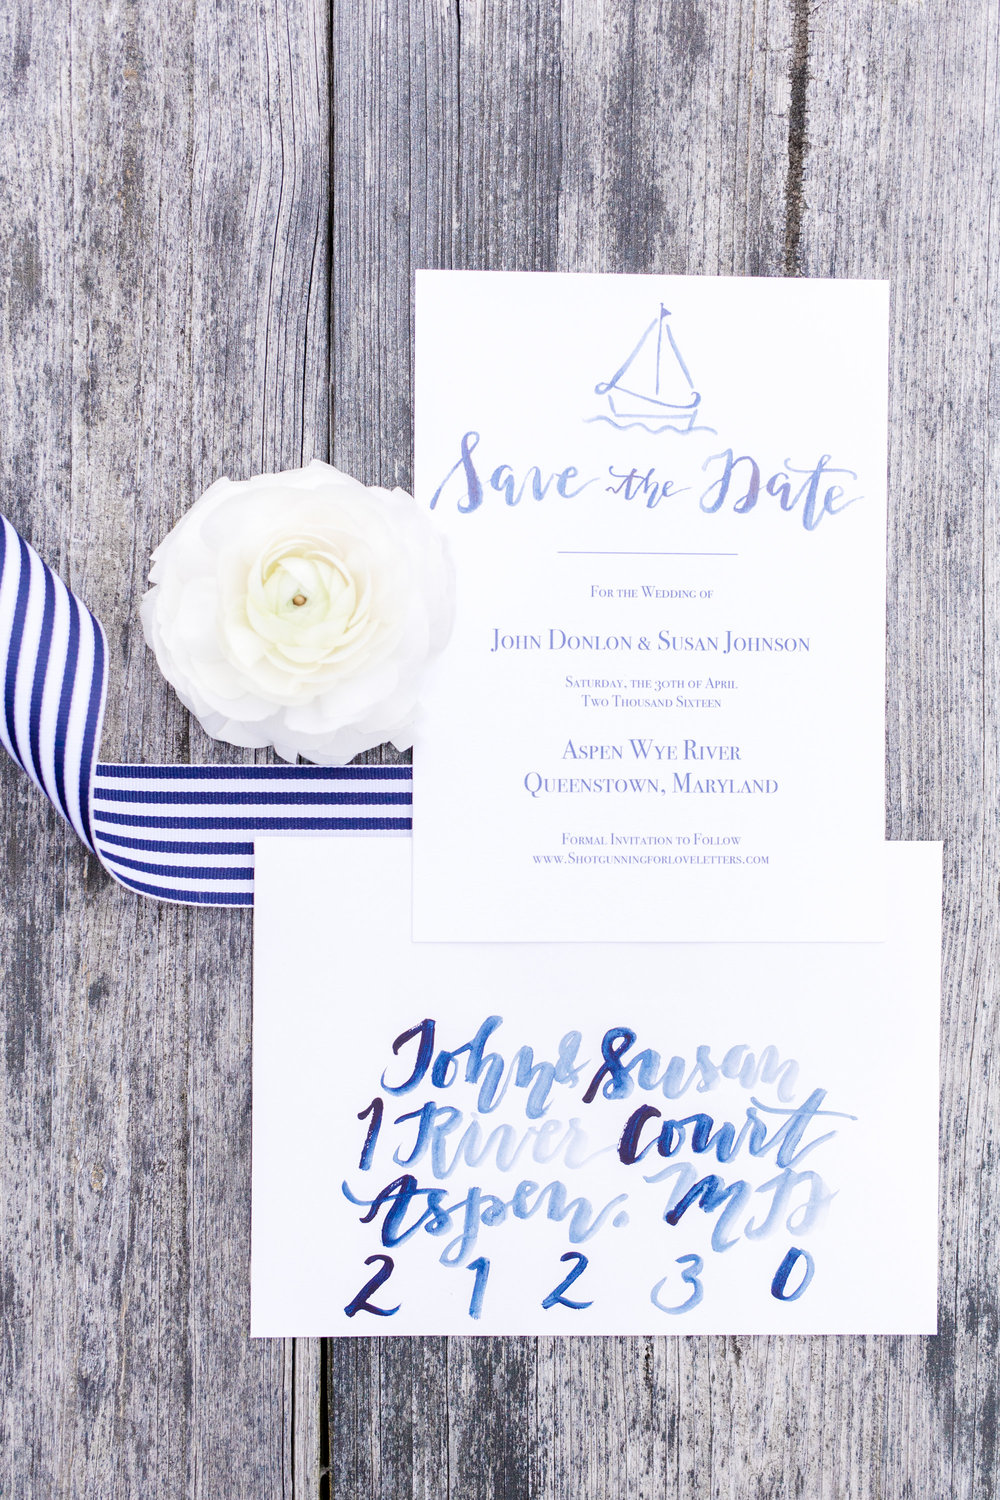 Enchanting Events and Design Nautical Wedding Styled Engagement Shoot Shotgunning For Loveletters